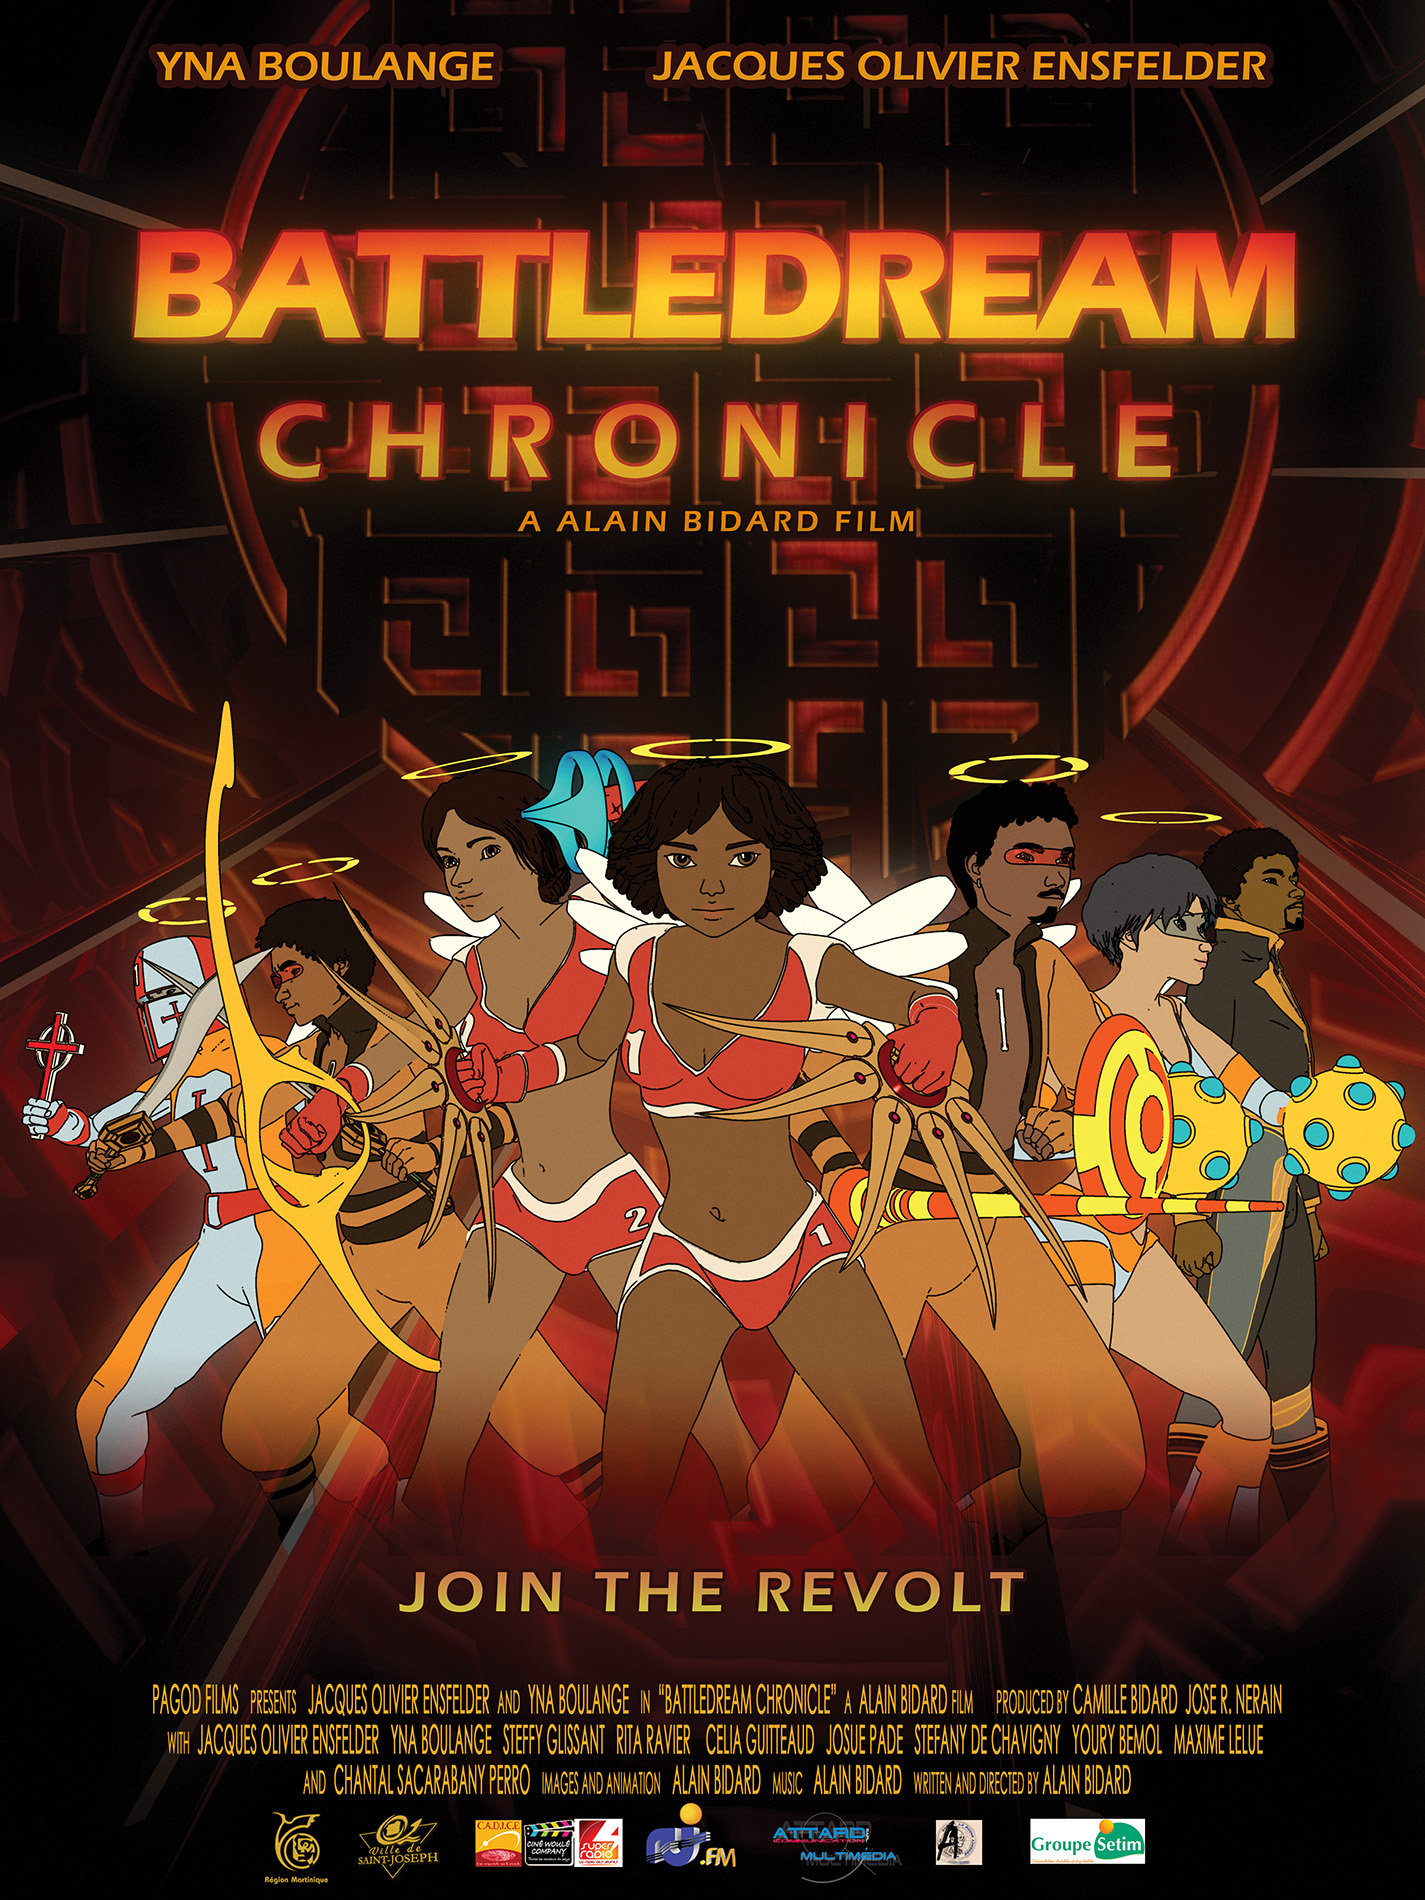 Poster Battledream Chronicle.jpg